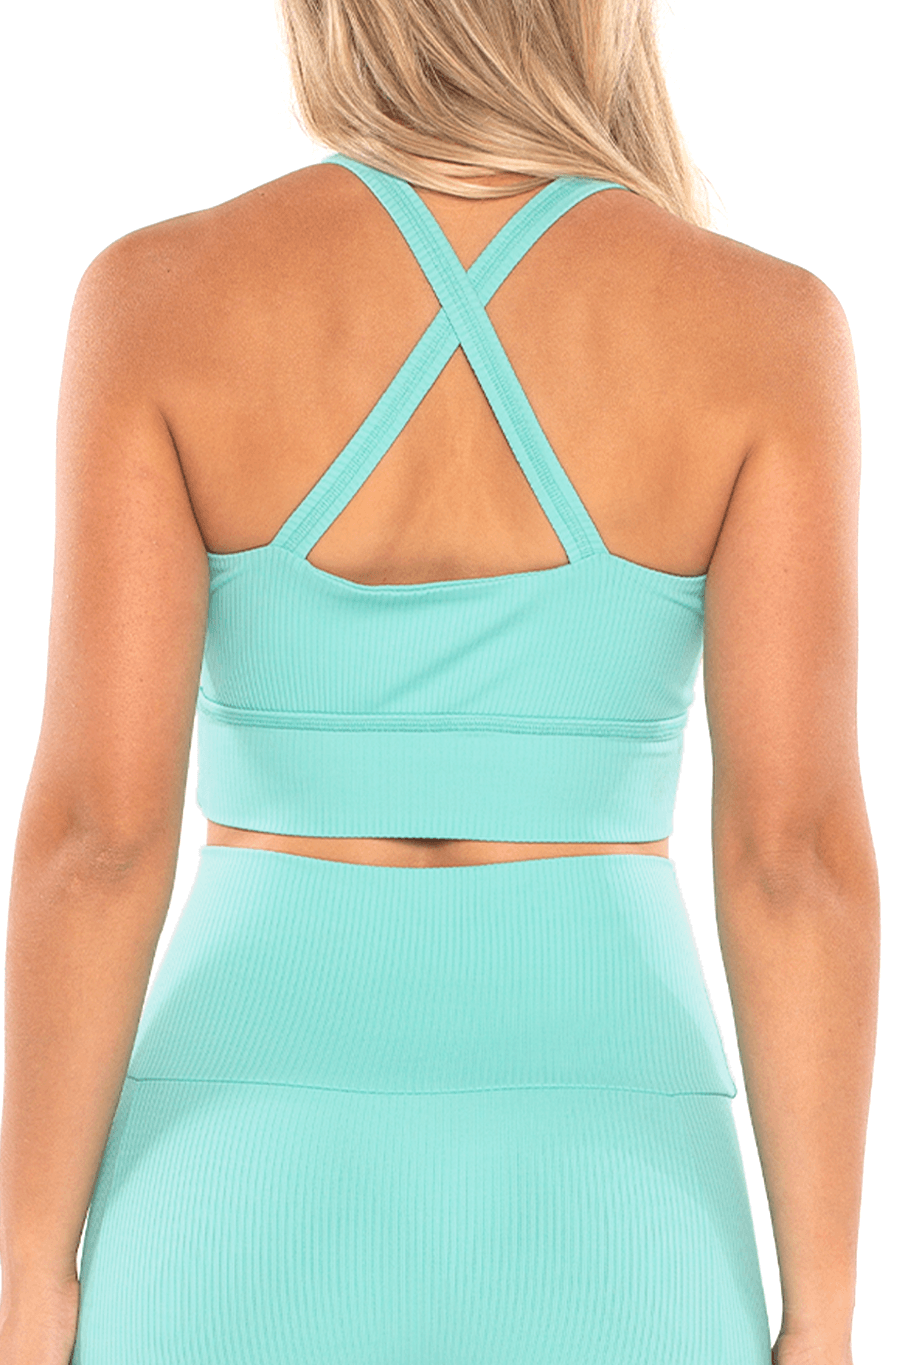 Shore Movement Sports Bra - Seaglass Rib